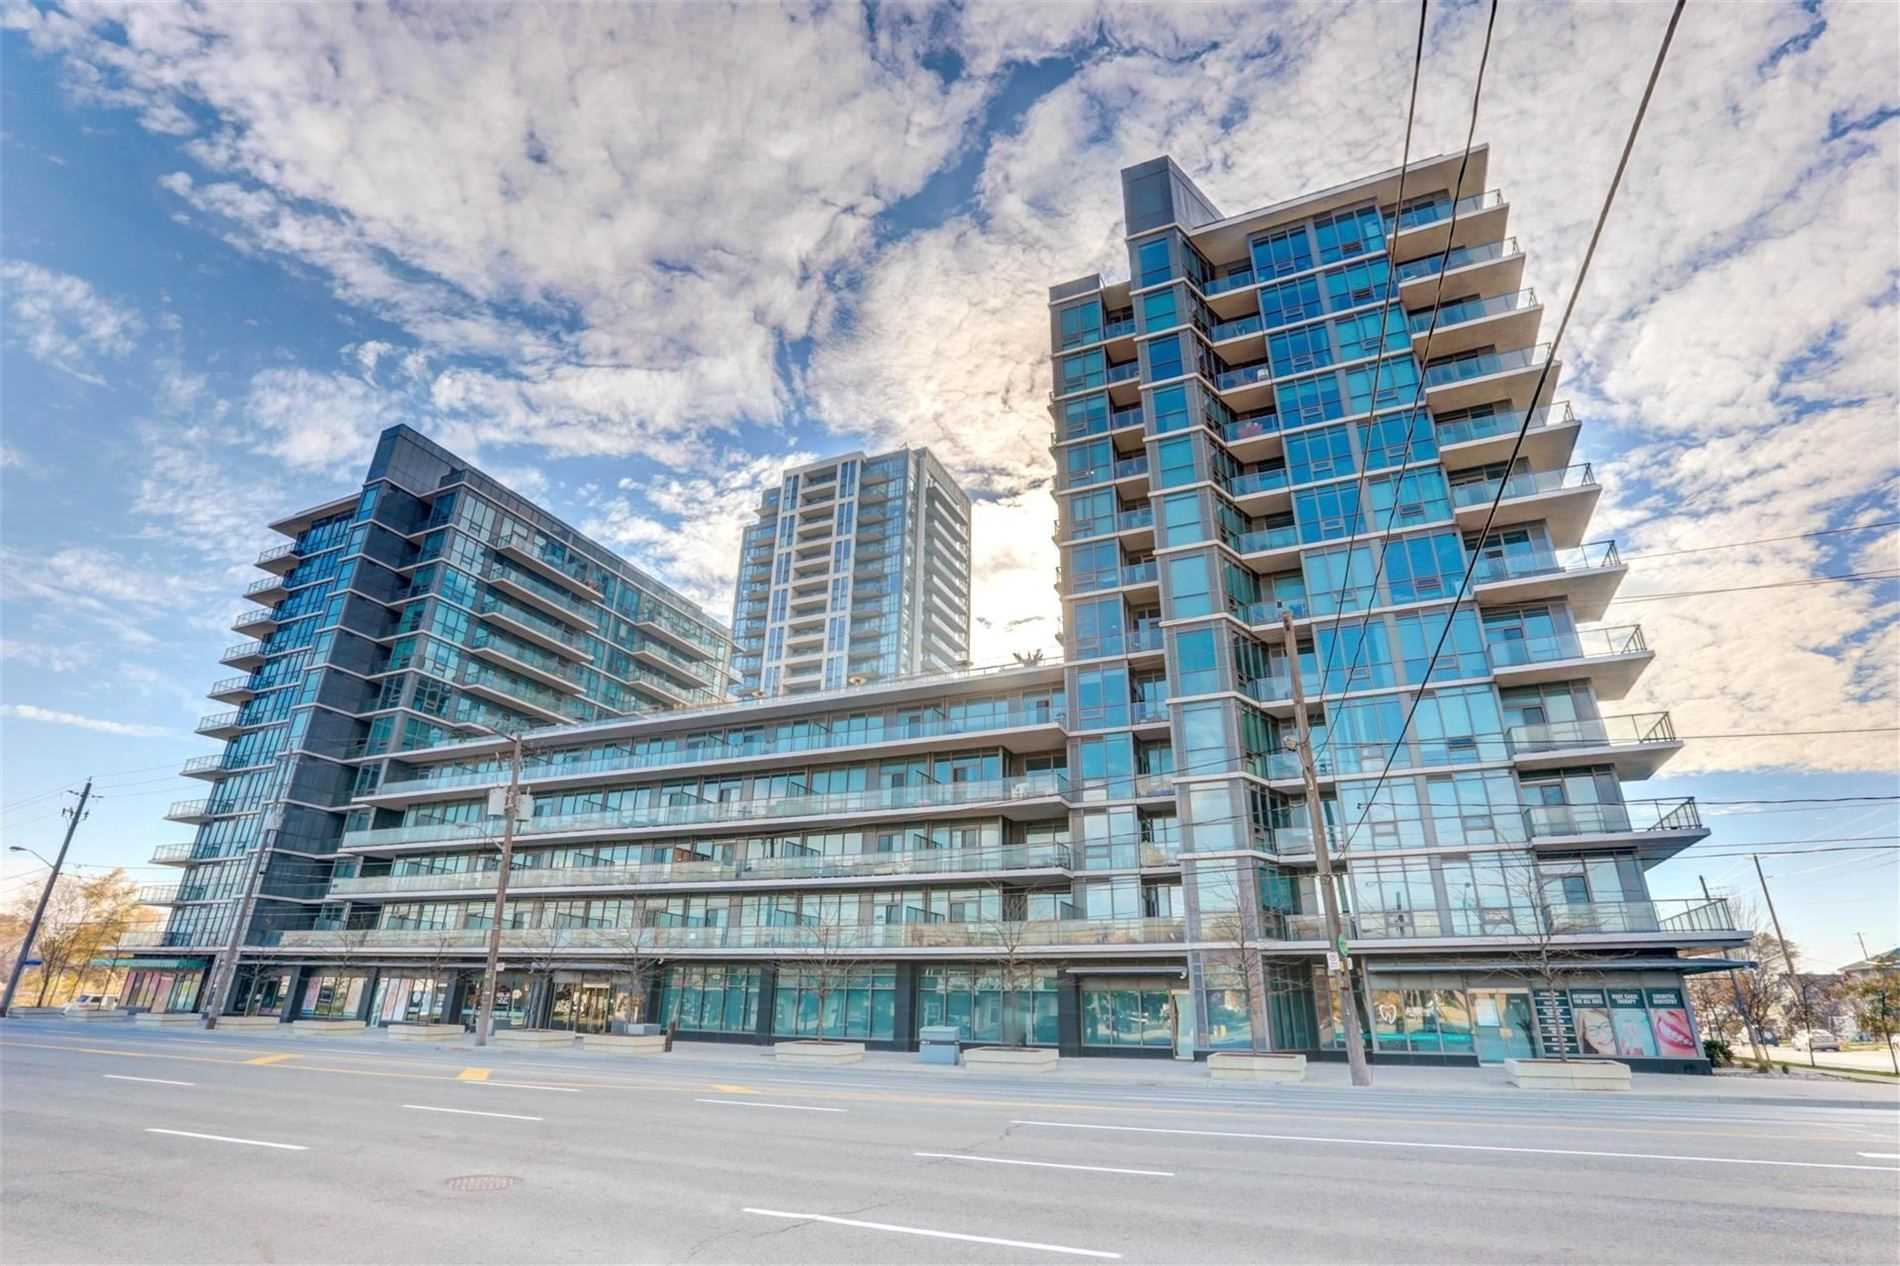 For Sale: 705 - 1185 The Queensway, Toronto, ON | 1 Bed, 1 Bath Condo for $399900.00. See 24 photos!